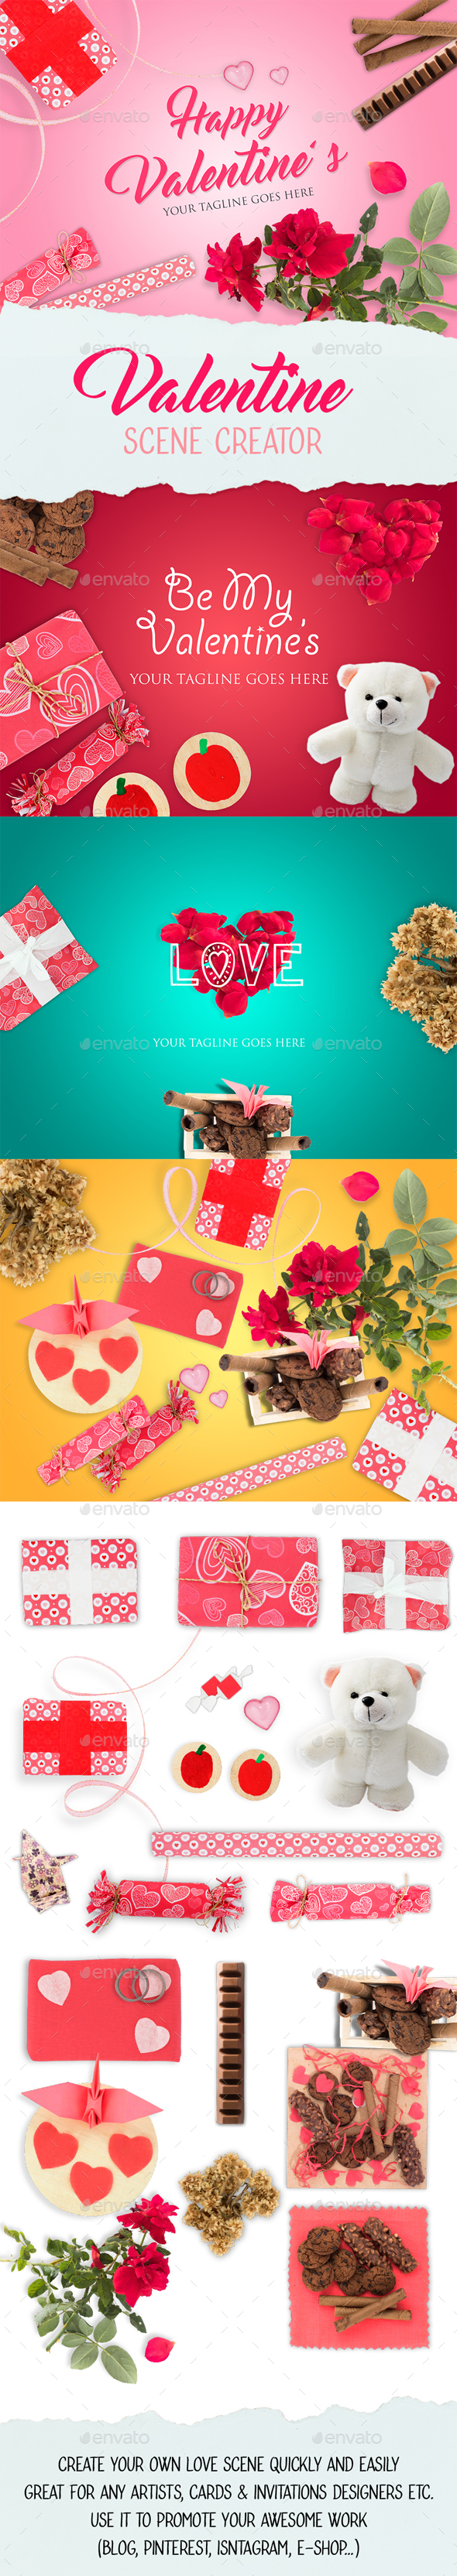 Valentine Scene Creator - Hero Images Graphics